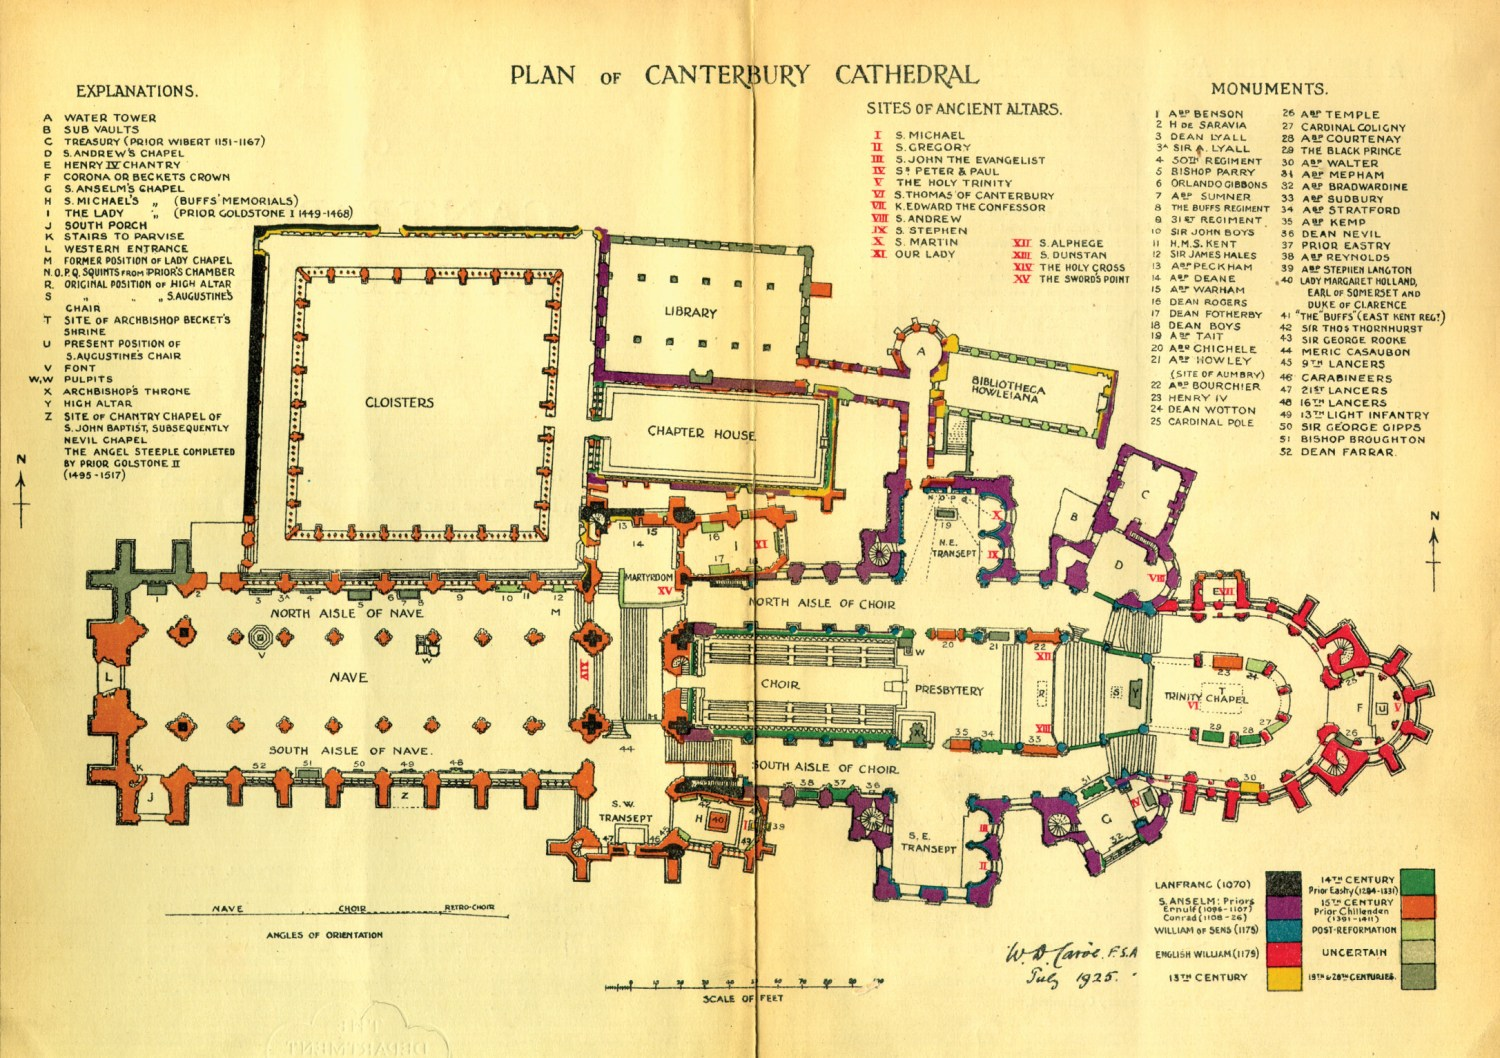 IMAGE: www.medart.pitt.edu/image/England/Canterbury/Cathedral/Plans/Canter-Cath-Plans.html